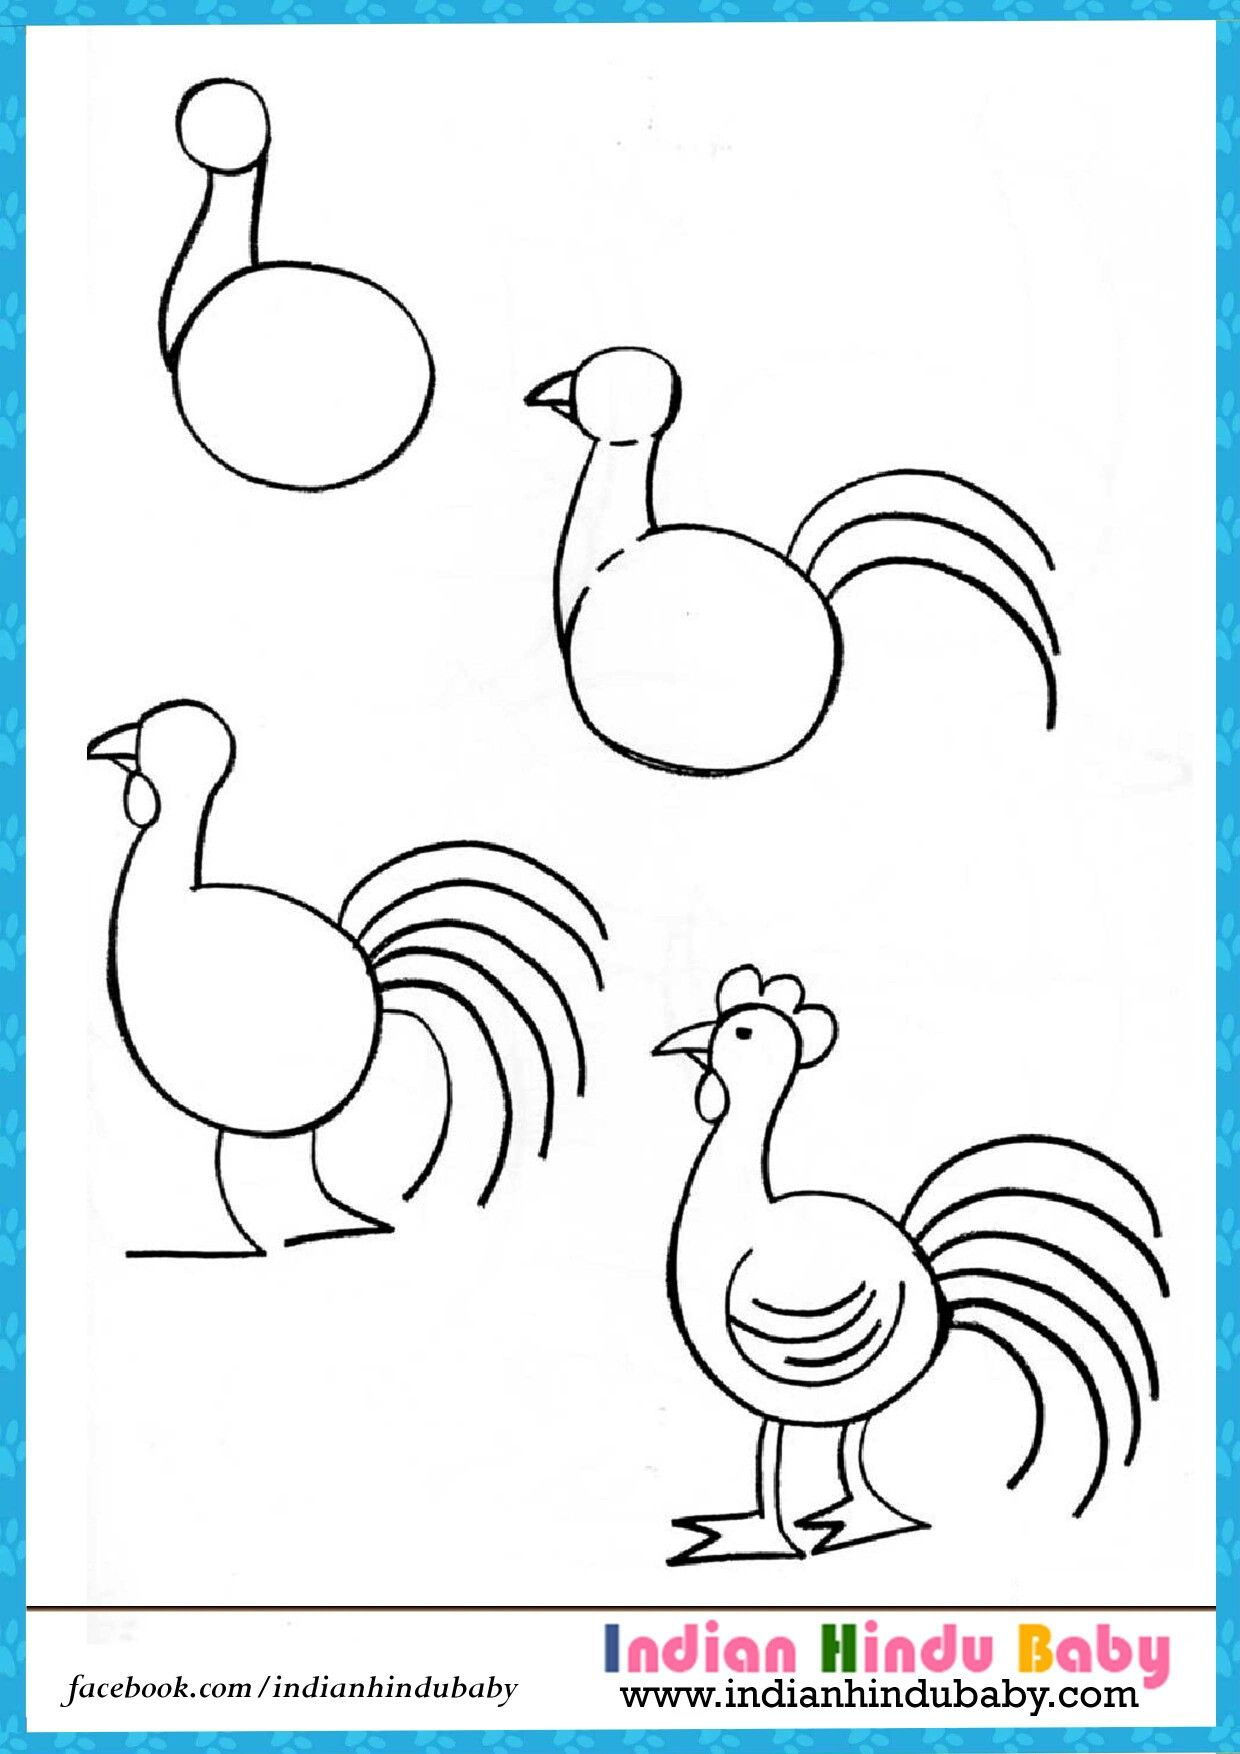 Uncategorized Simple Pictures For Kids To Draw teach your kid to draw hen with simple drawing tips https https